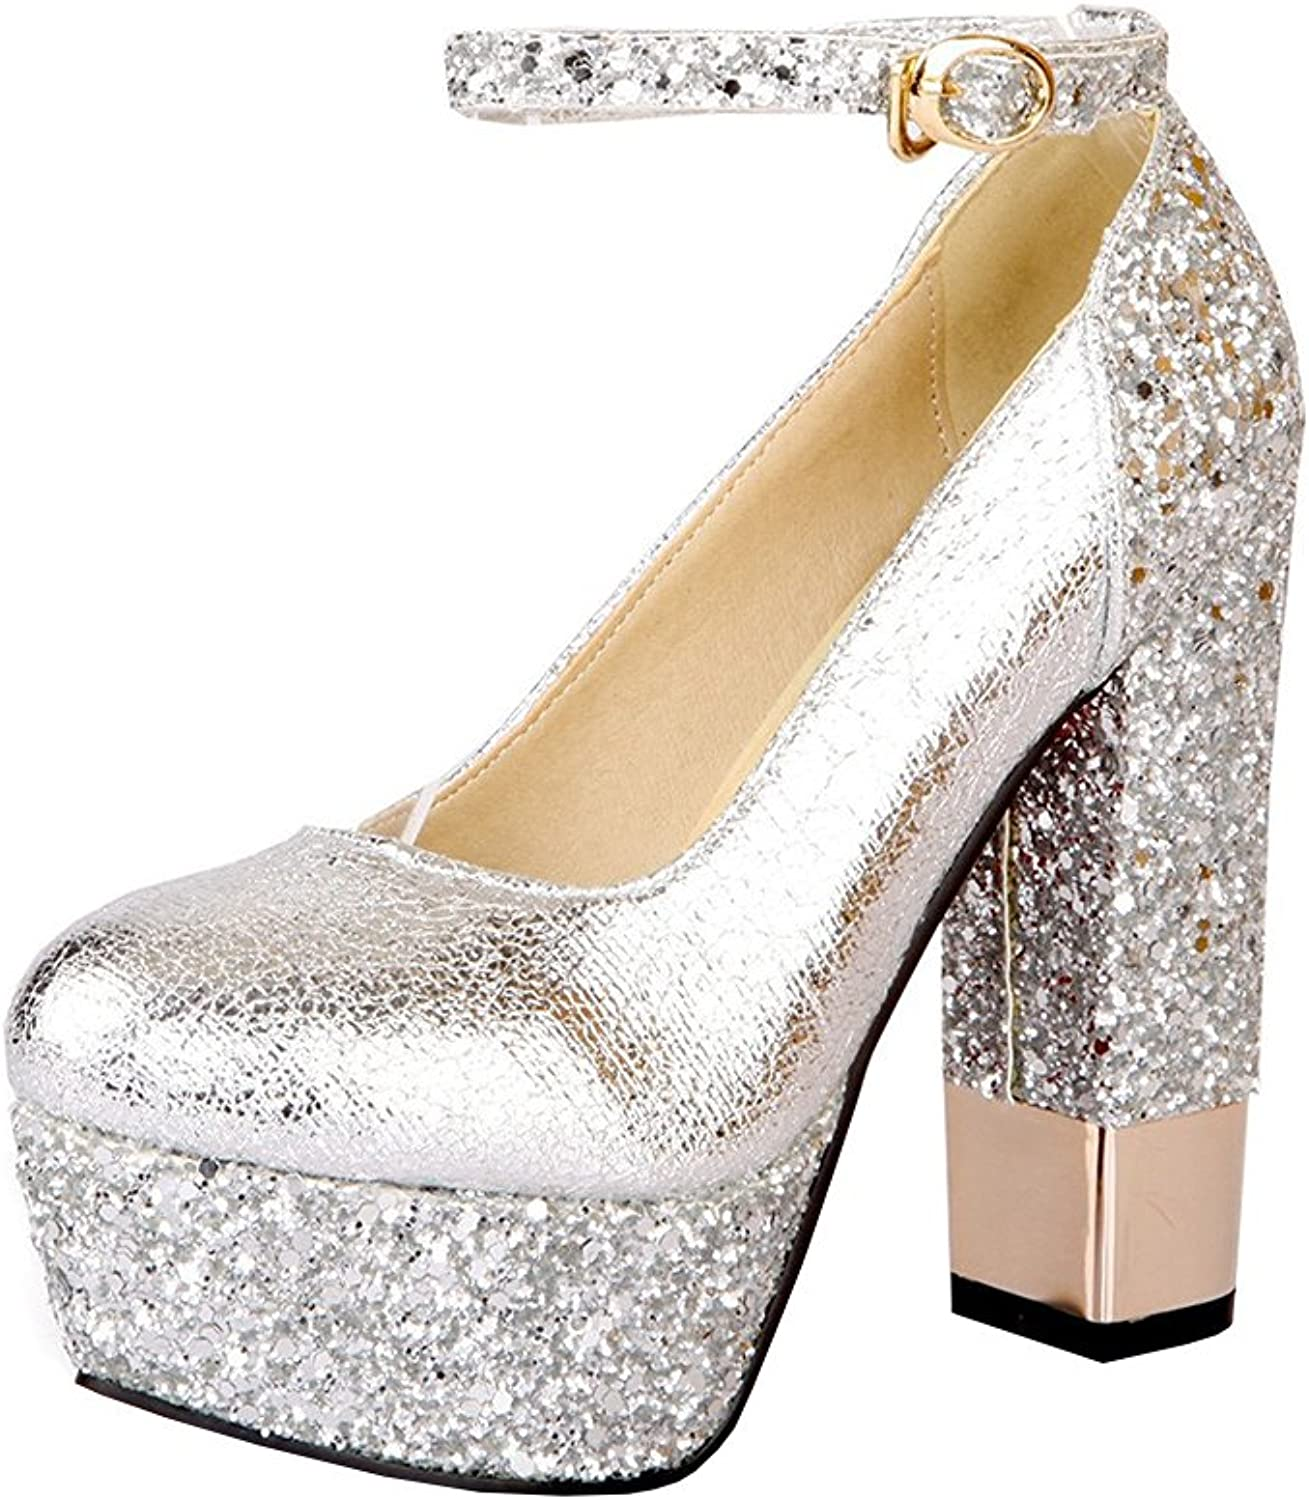 Agodor Womens Platform High Block Heel Ankle Strap Pumps Glitter Party Evening shoes